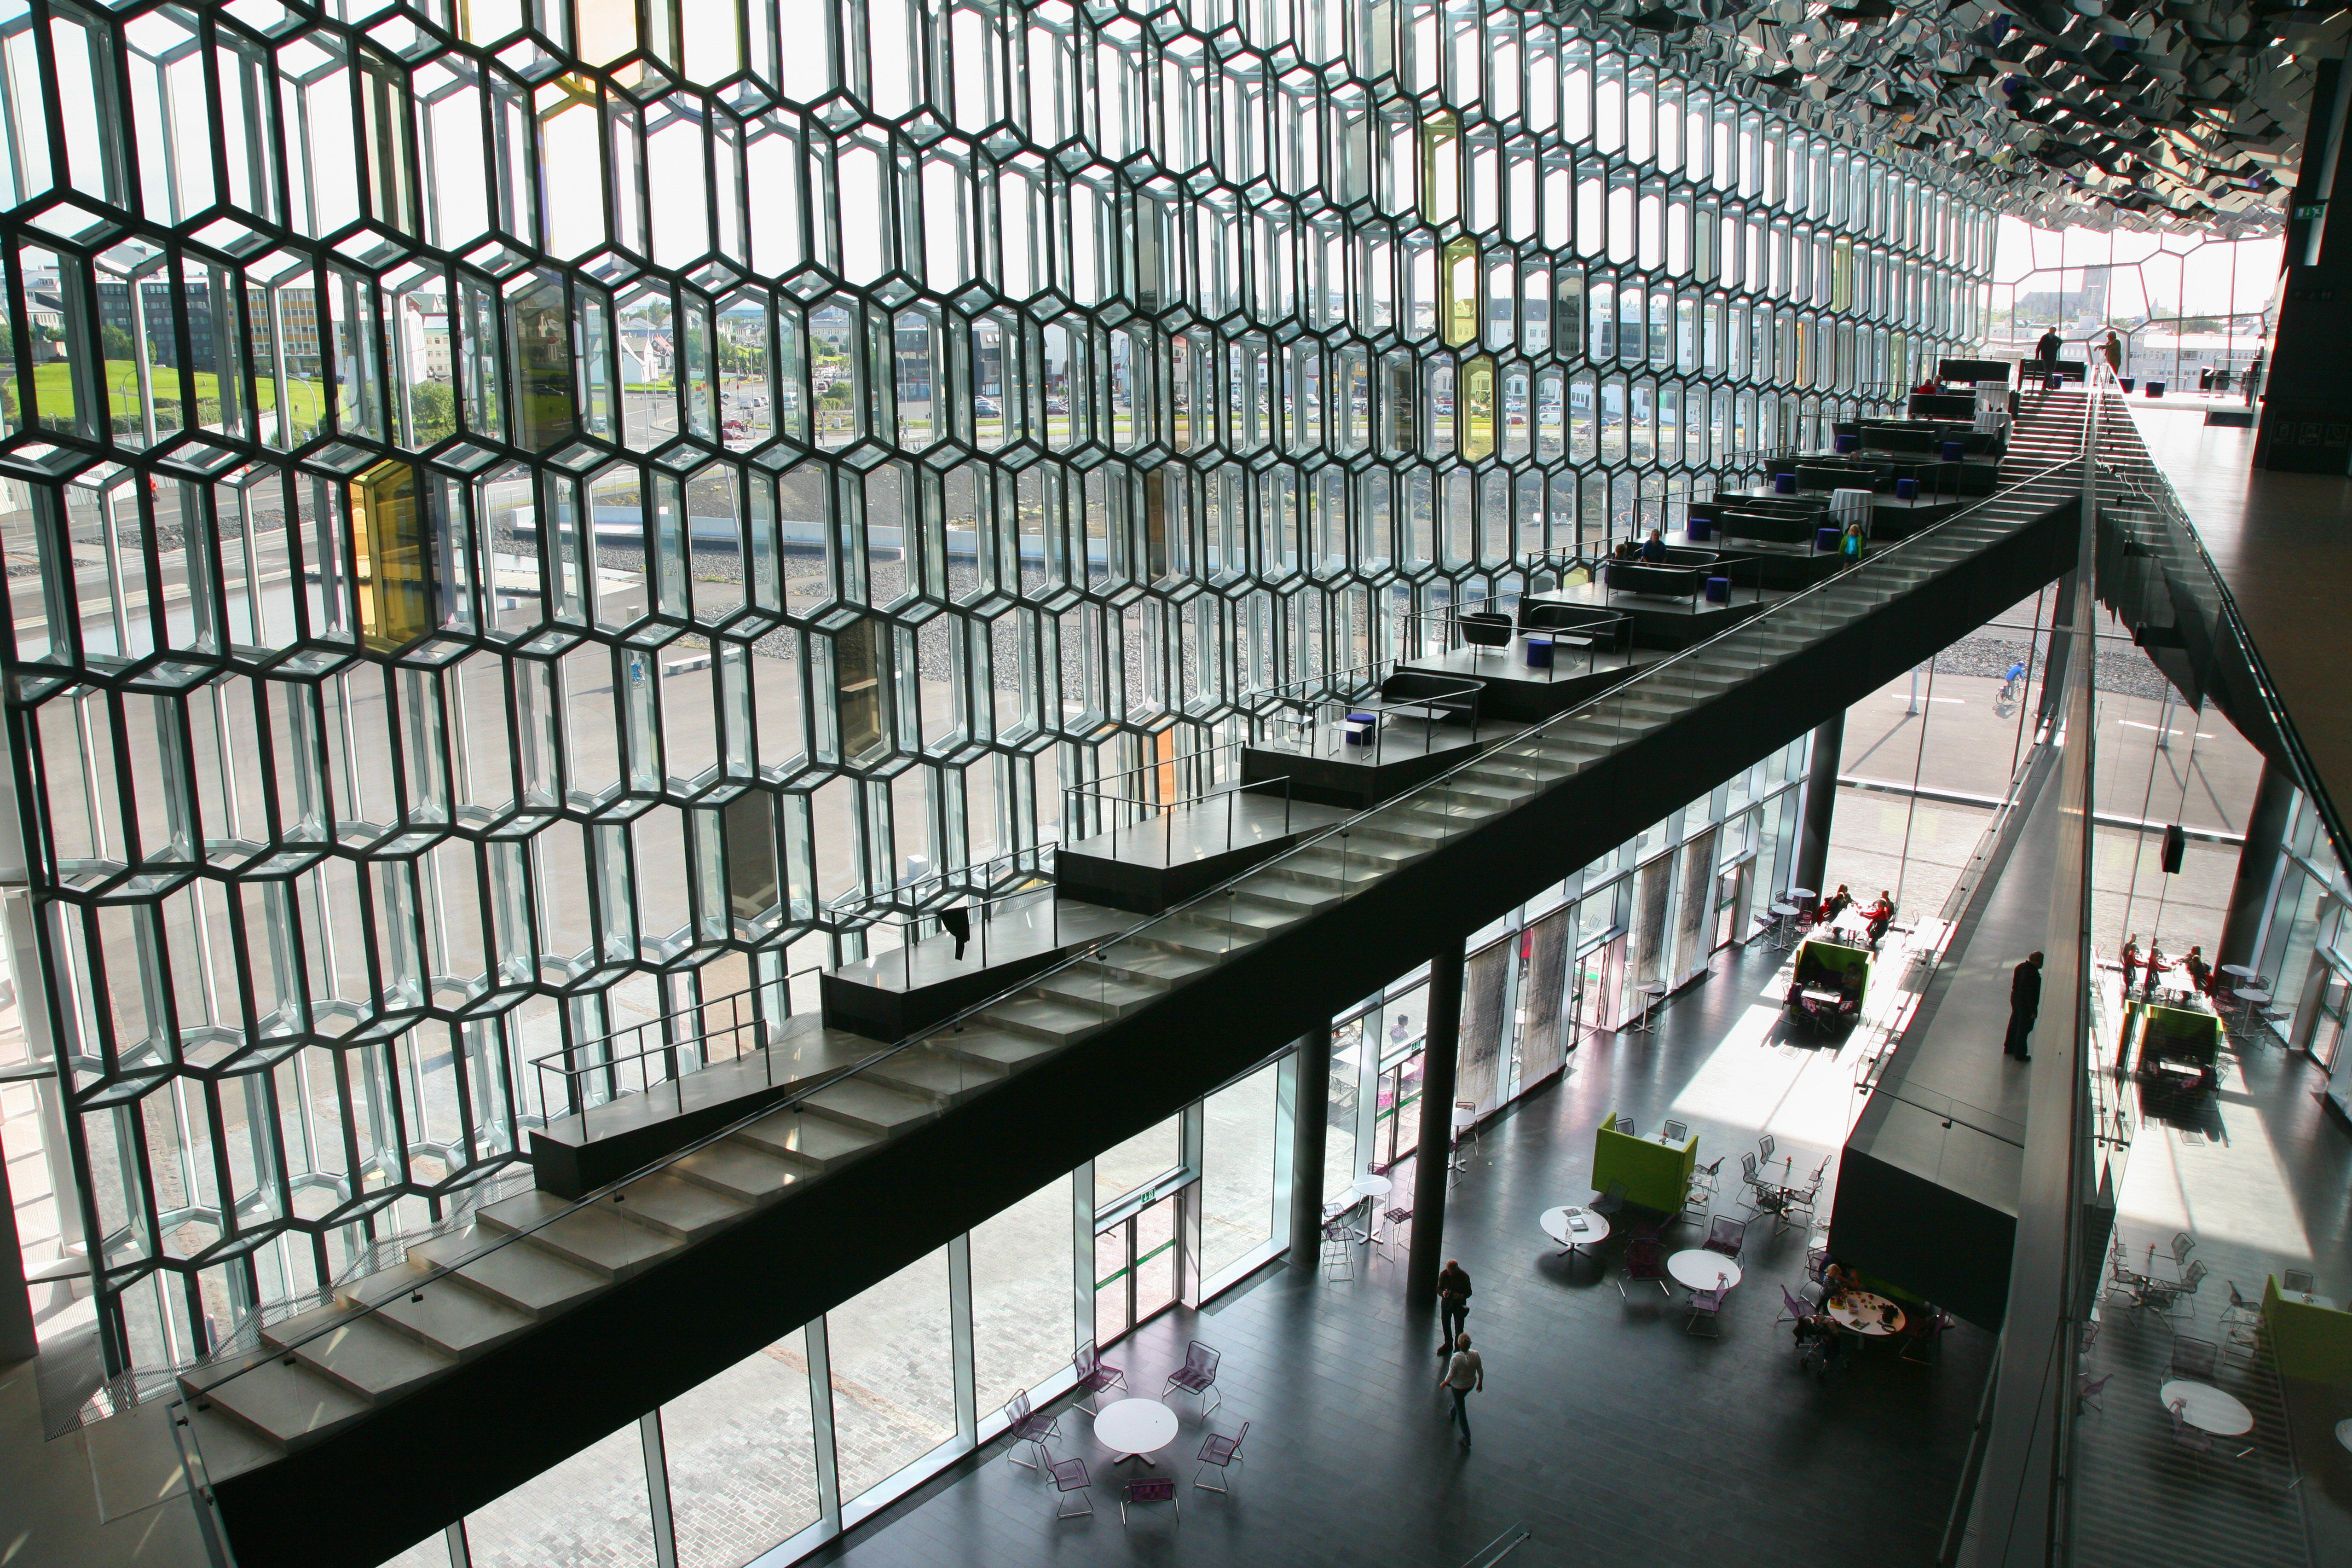 Interior of the Harpa Concert Hall and Conference Center in Reykjavik, Iceland